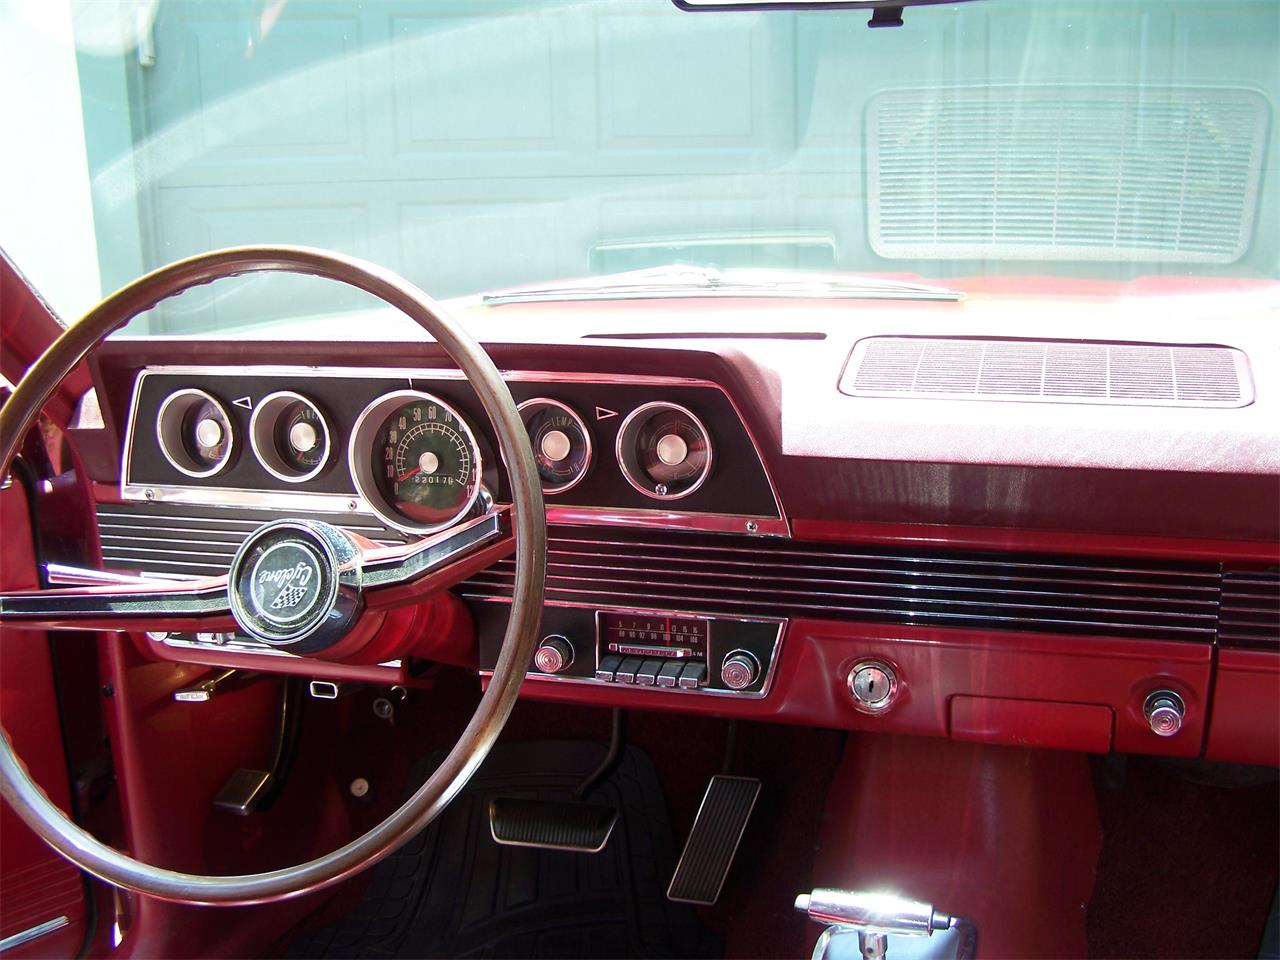 Large Picture of Classic '66 Mercury Cyclone GT located in PONCE INLET Florida - $29,900.00 - IEV2